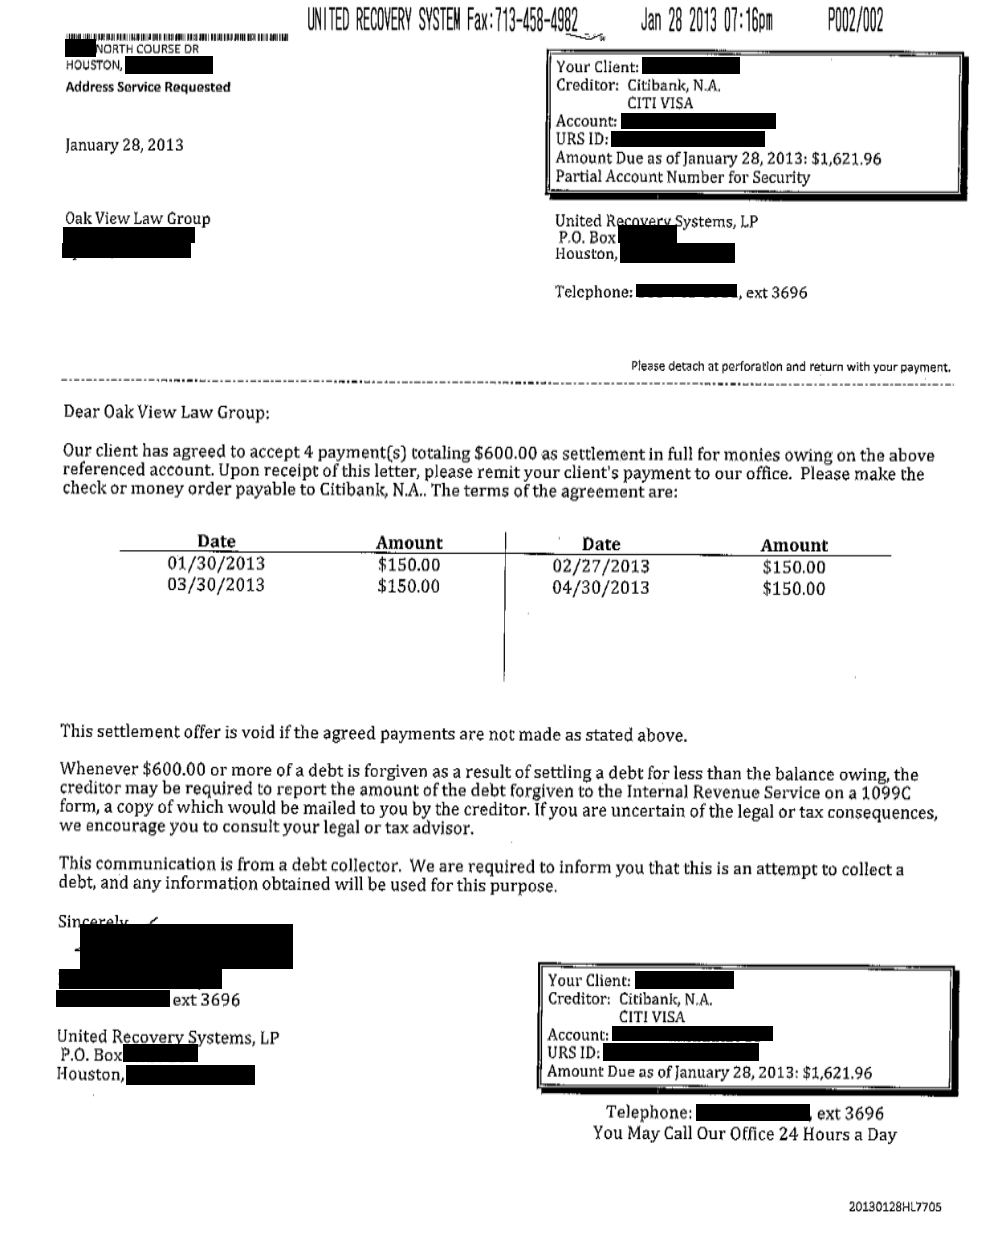 Saved $766.47 with Citibank for Client RP